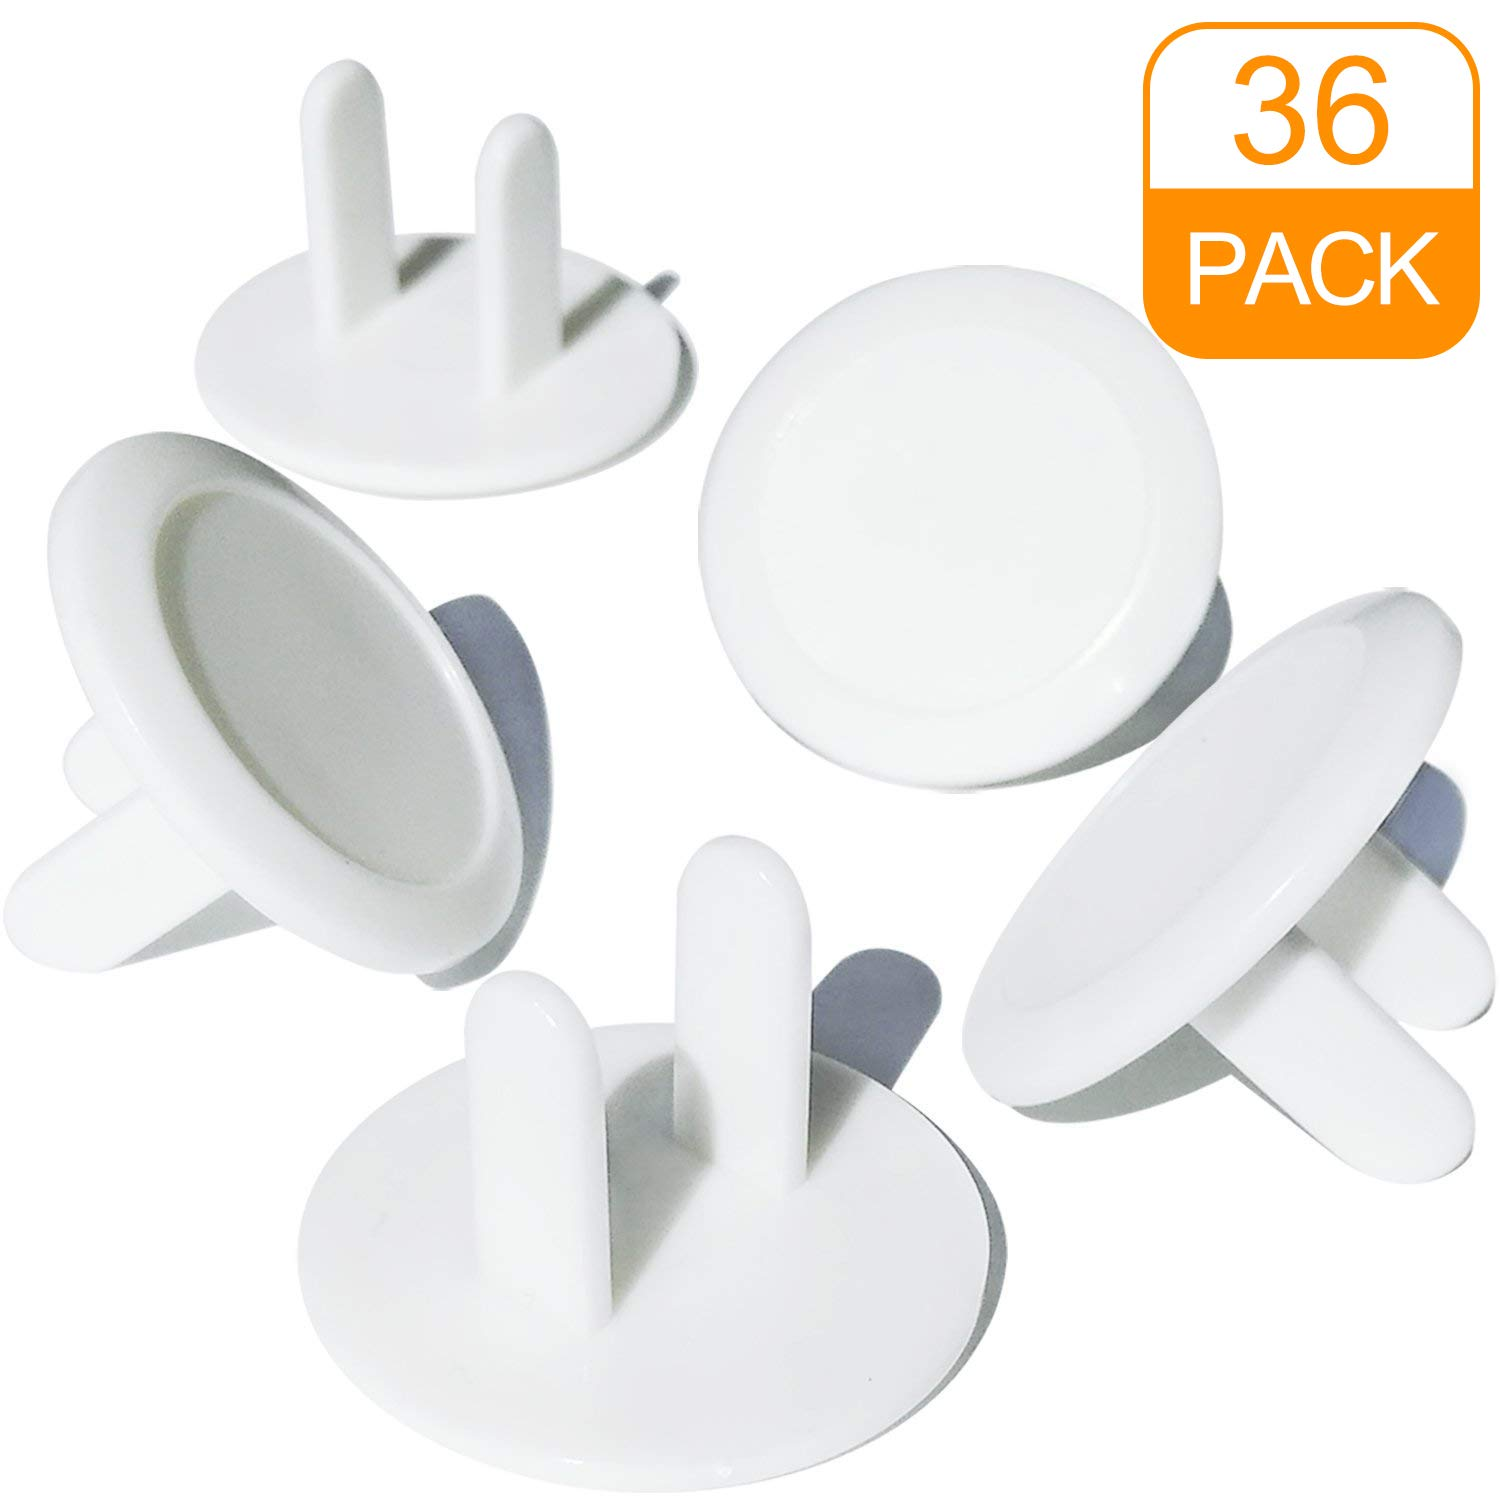 Outlet Covers, Child Proof Safety Electrical Plugs Protector, Baby Proof White Safety Caps (36Pack) by CalMyotis